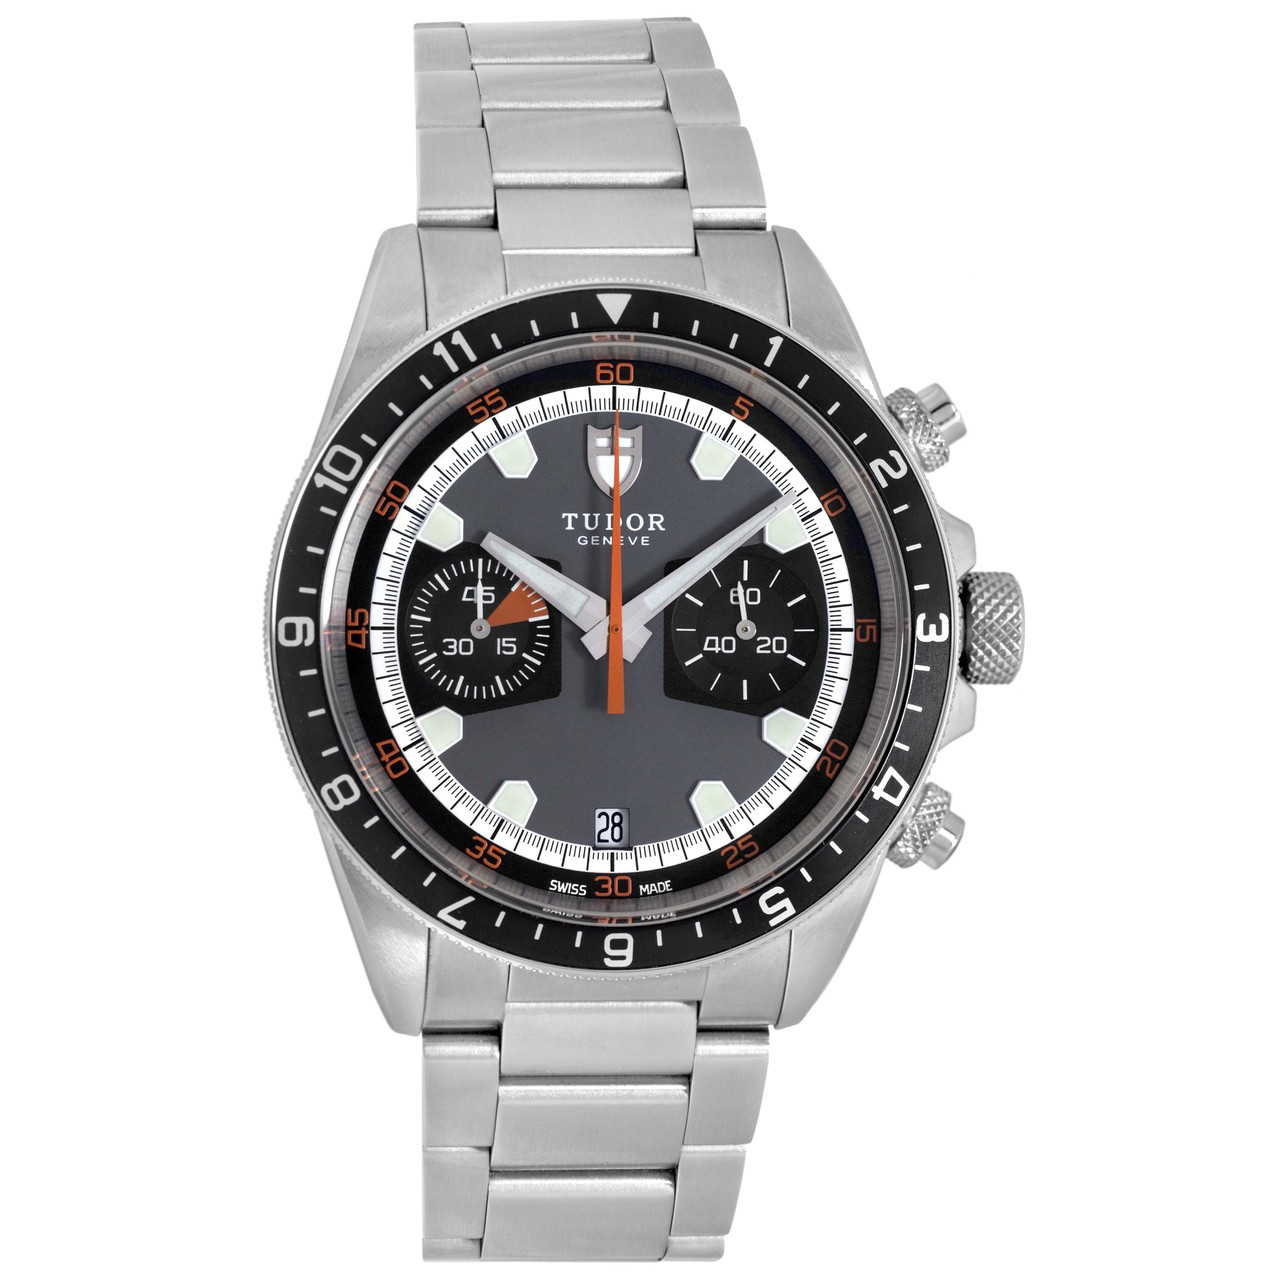 be34c08ff Tudor Stainless Steel Heritage Chrono Automatic Watch 70330N - modaselle